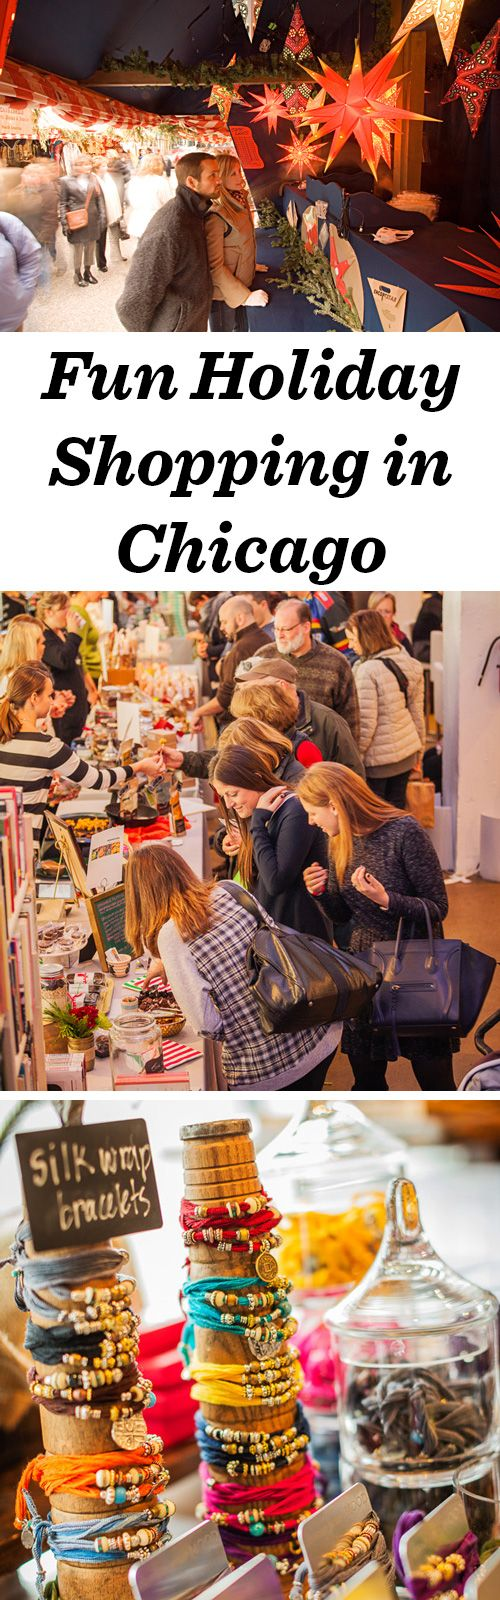 Three Chicago markets to visit for thoughtful gifts this season: http://www.midwestliving.com/travel/illinois/chicago/shopping/3-holiday-markets-chicago/